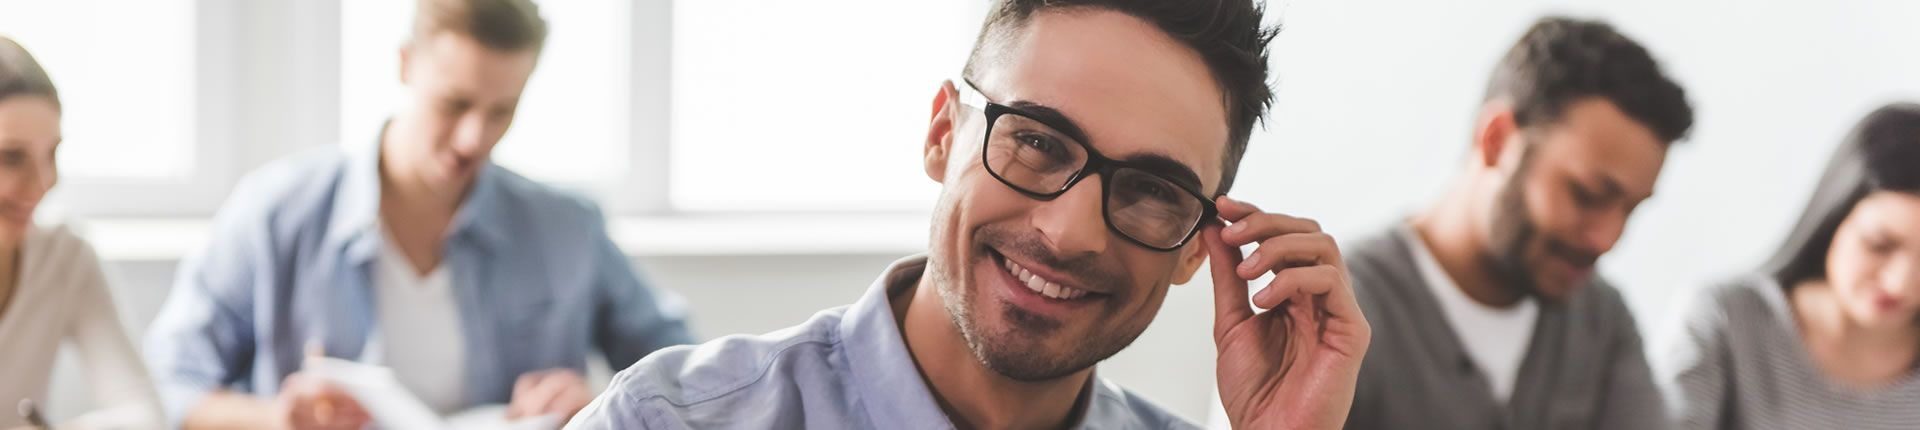 Student smiling with glasses